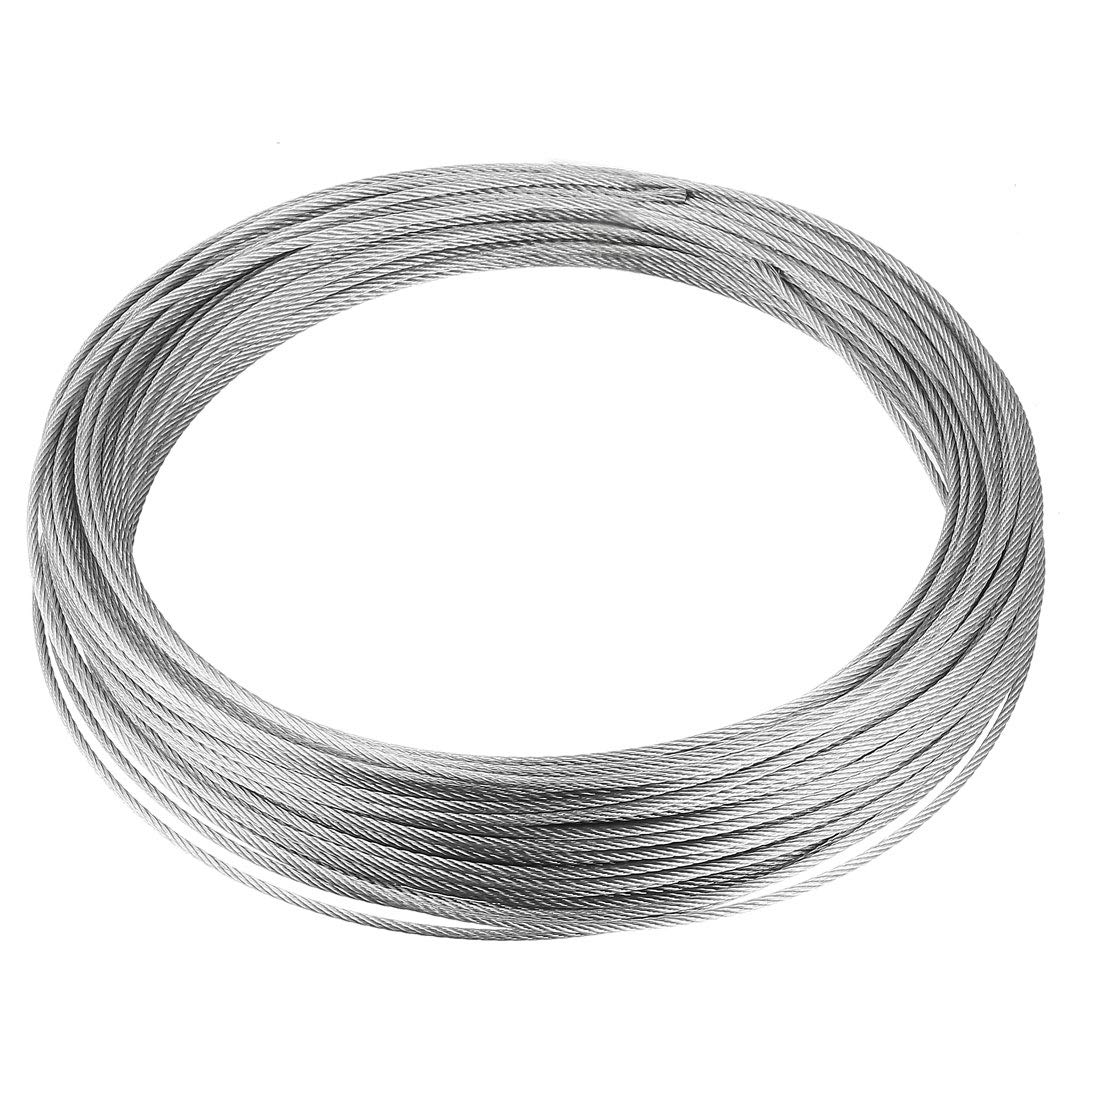 uxcell Stainless Steel Wire Rope Cable 2mm 0.08 inch Dia 24.6ft 7.5m Length 14 Gauge 304 Grade for Hoist Lifting Grinder Pulley Wheel